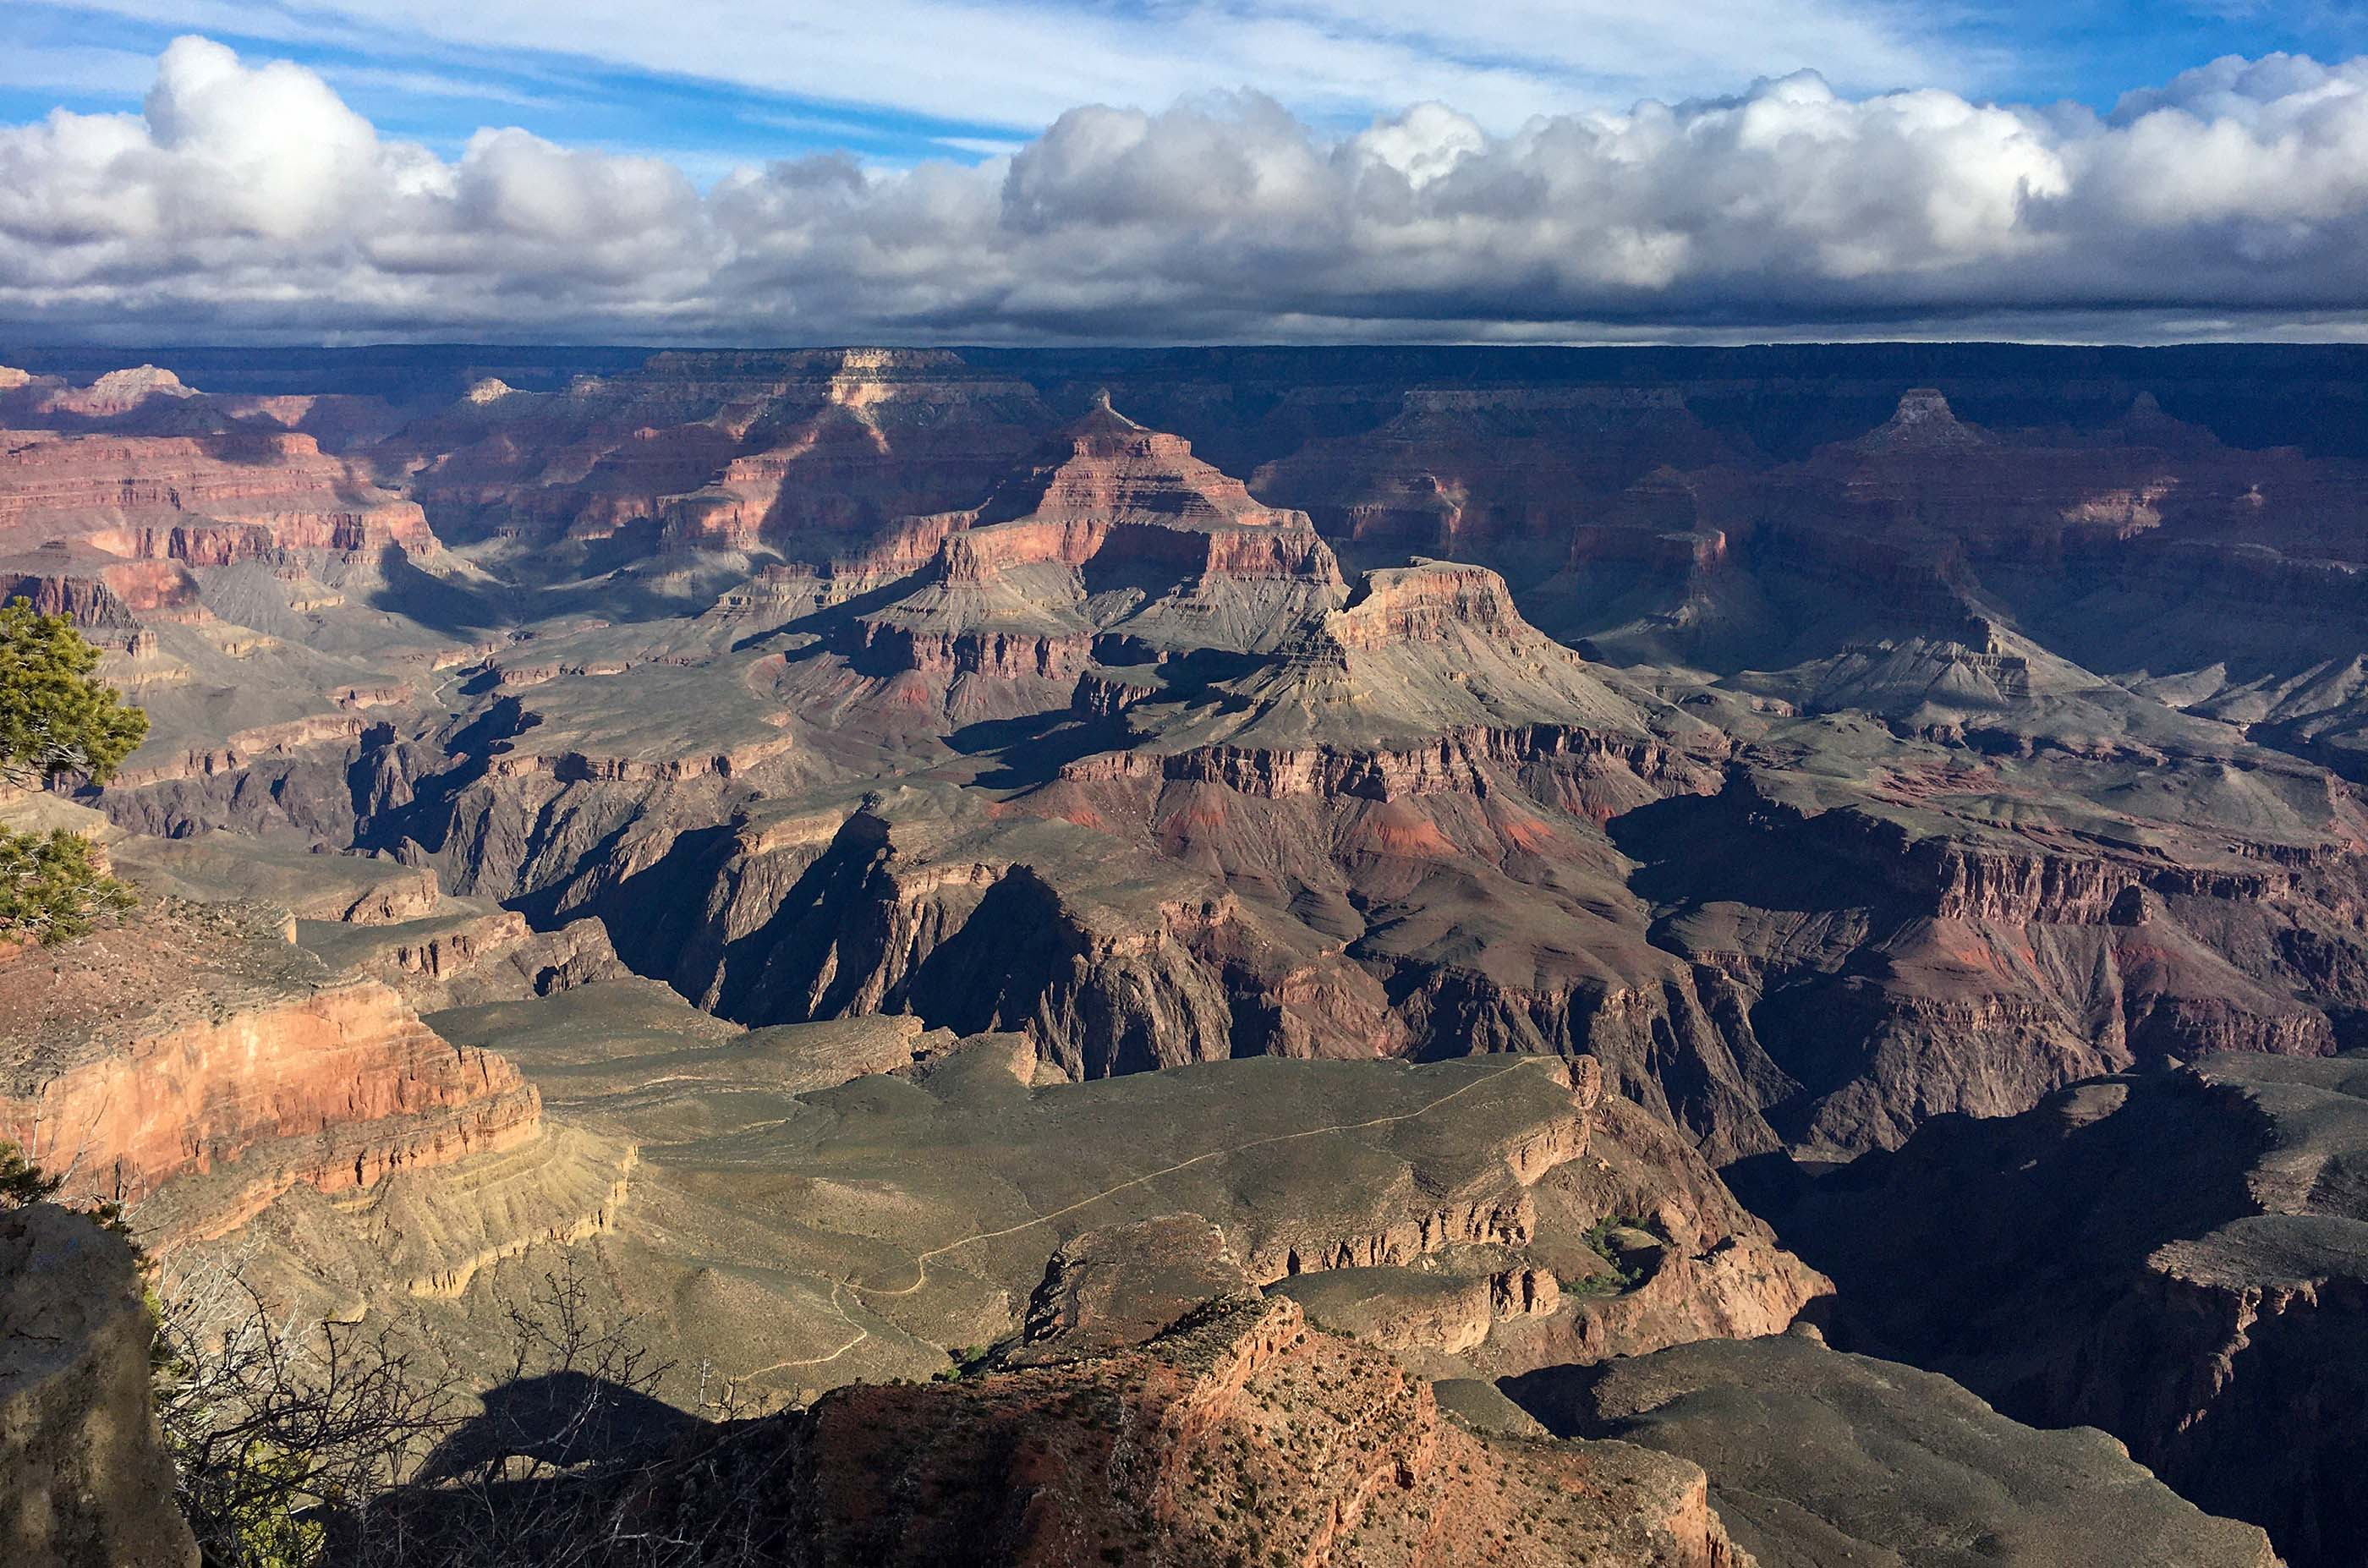 looking down across a plateau within a vast canyon with colorful peaks rising thousands of feet above. Threatening storm clouds shadow the distant rim.